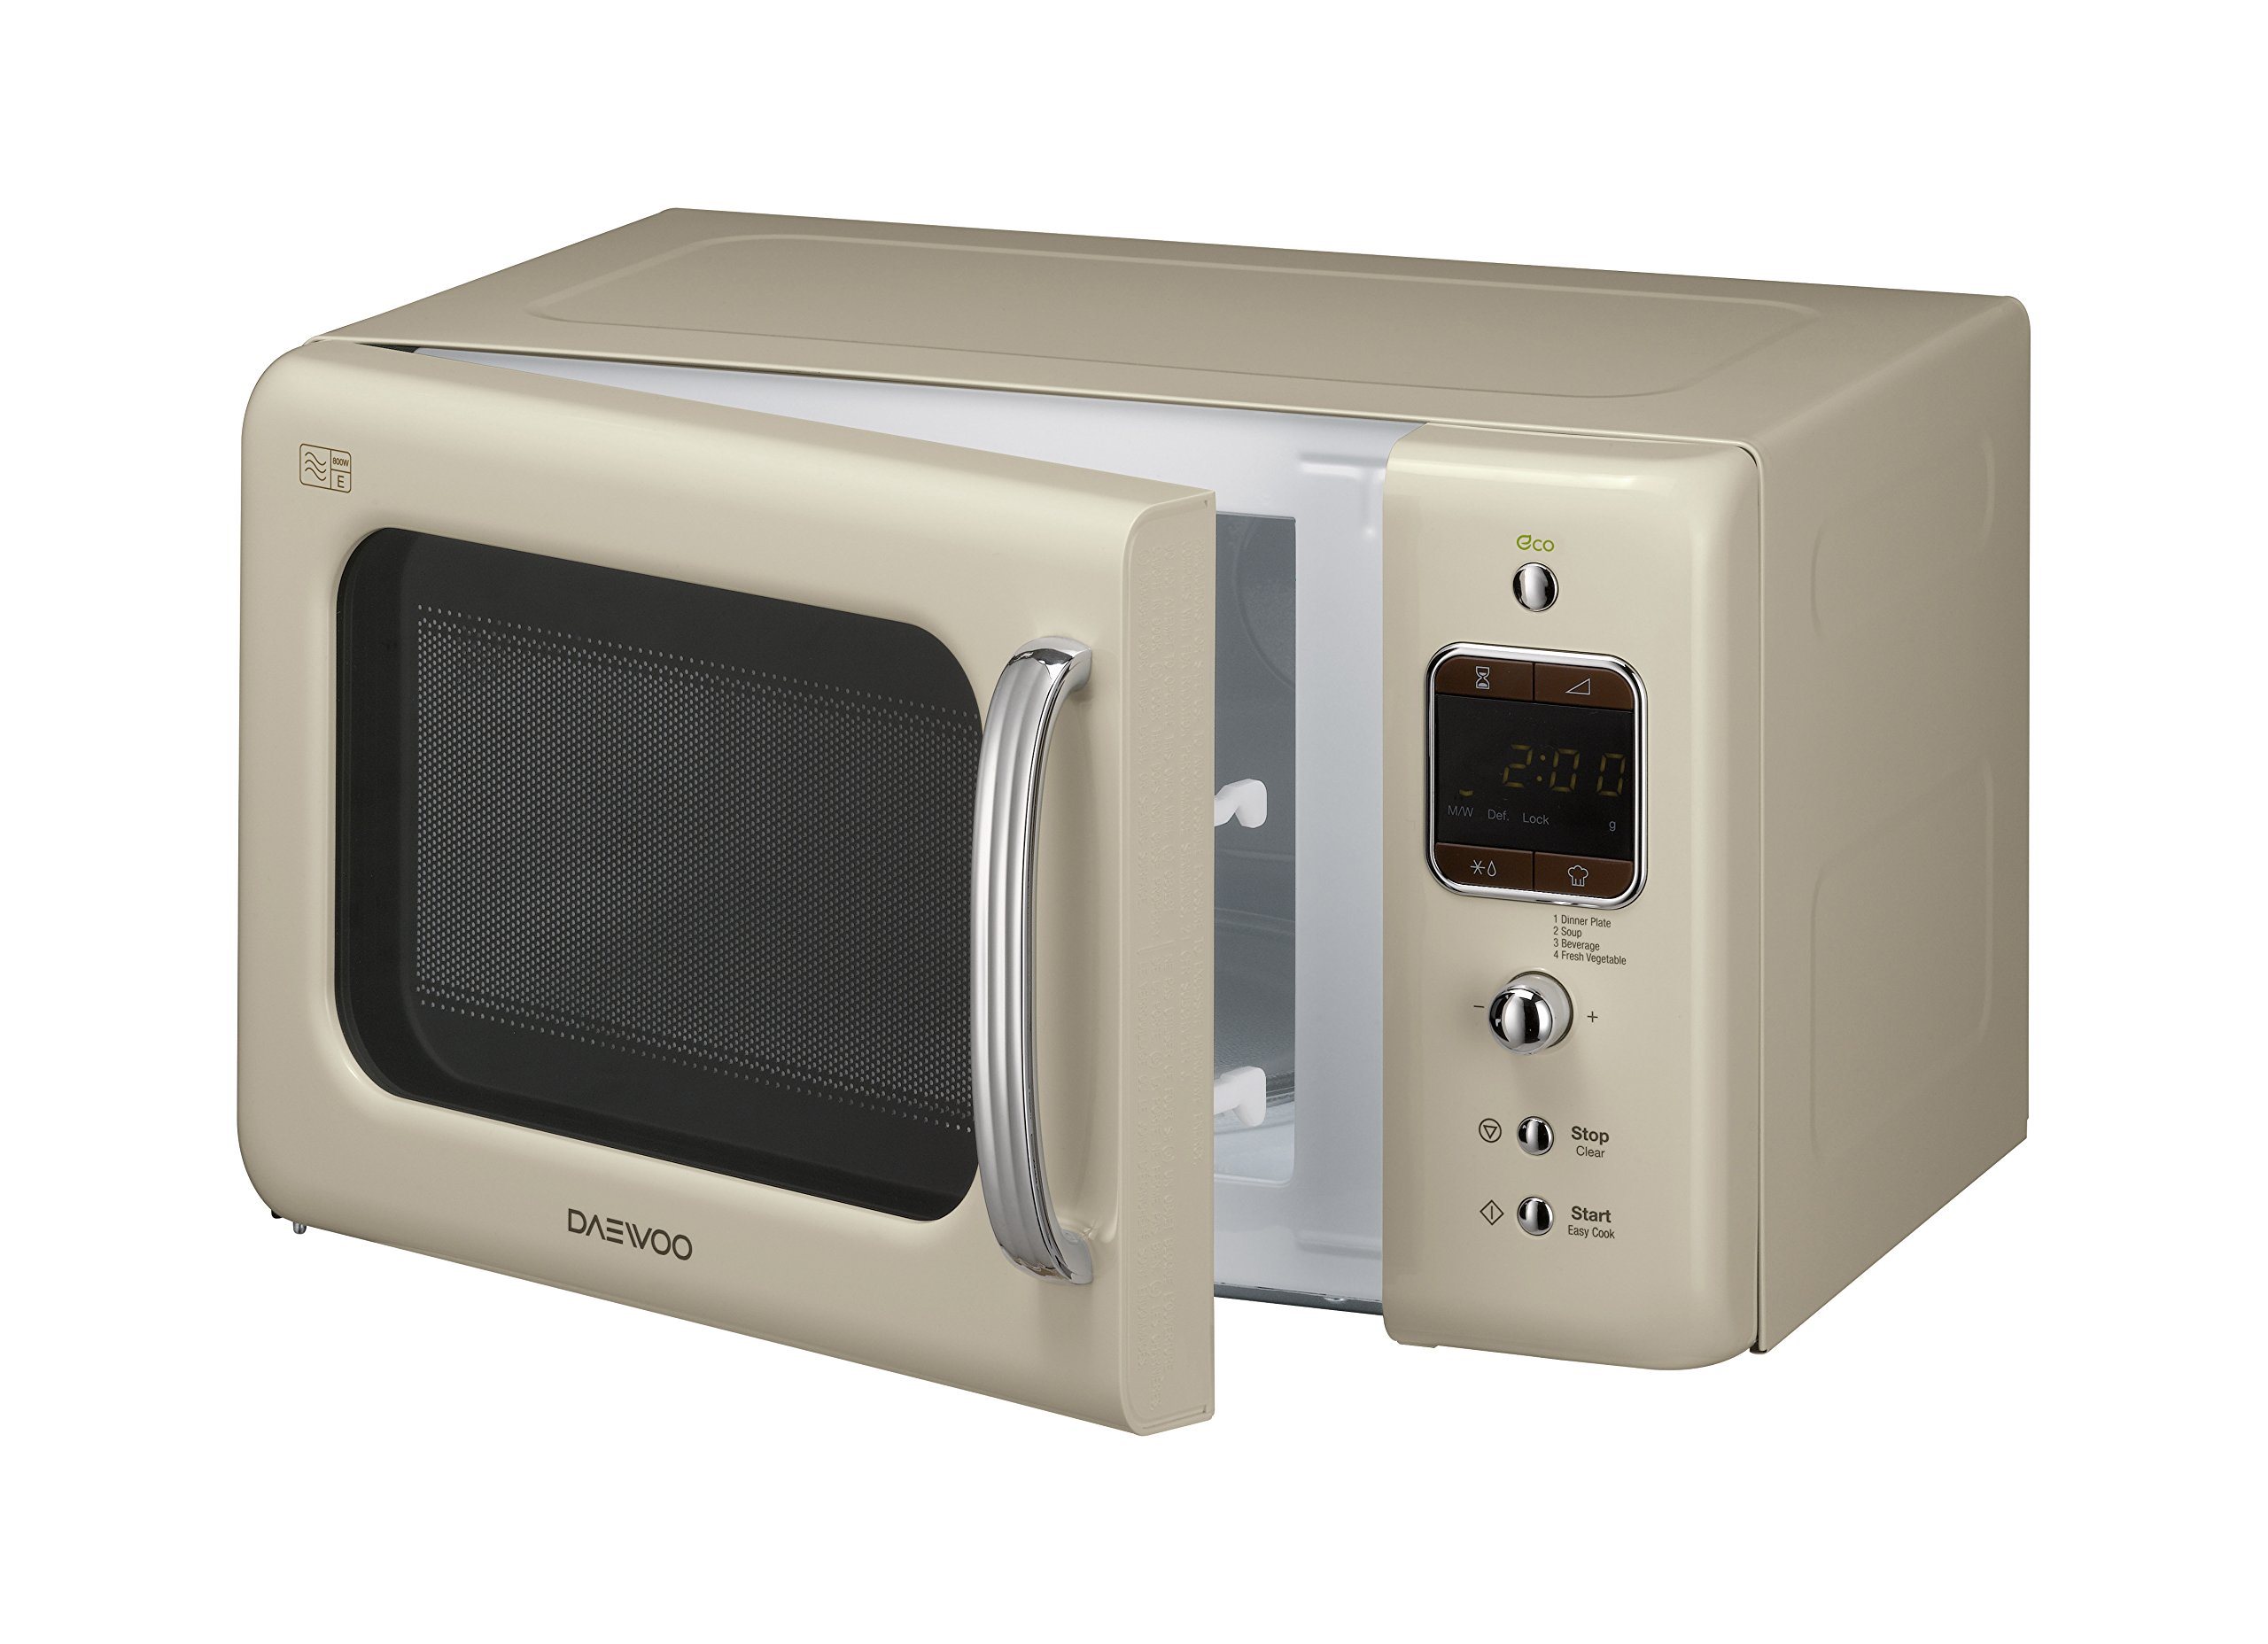 Daewoo Kor7lbkc Retro Style Microwave Oven 20 L 800 W